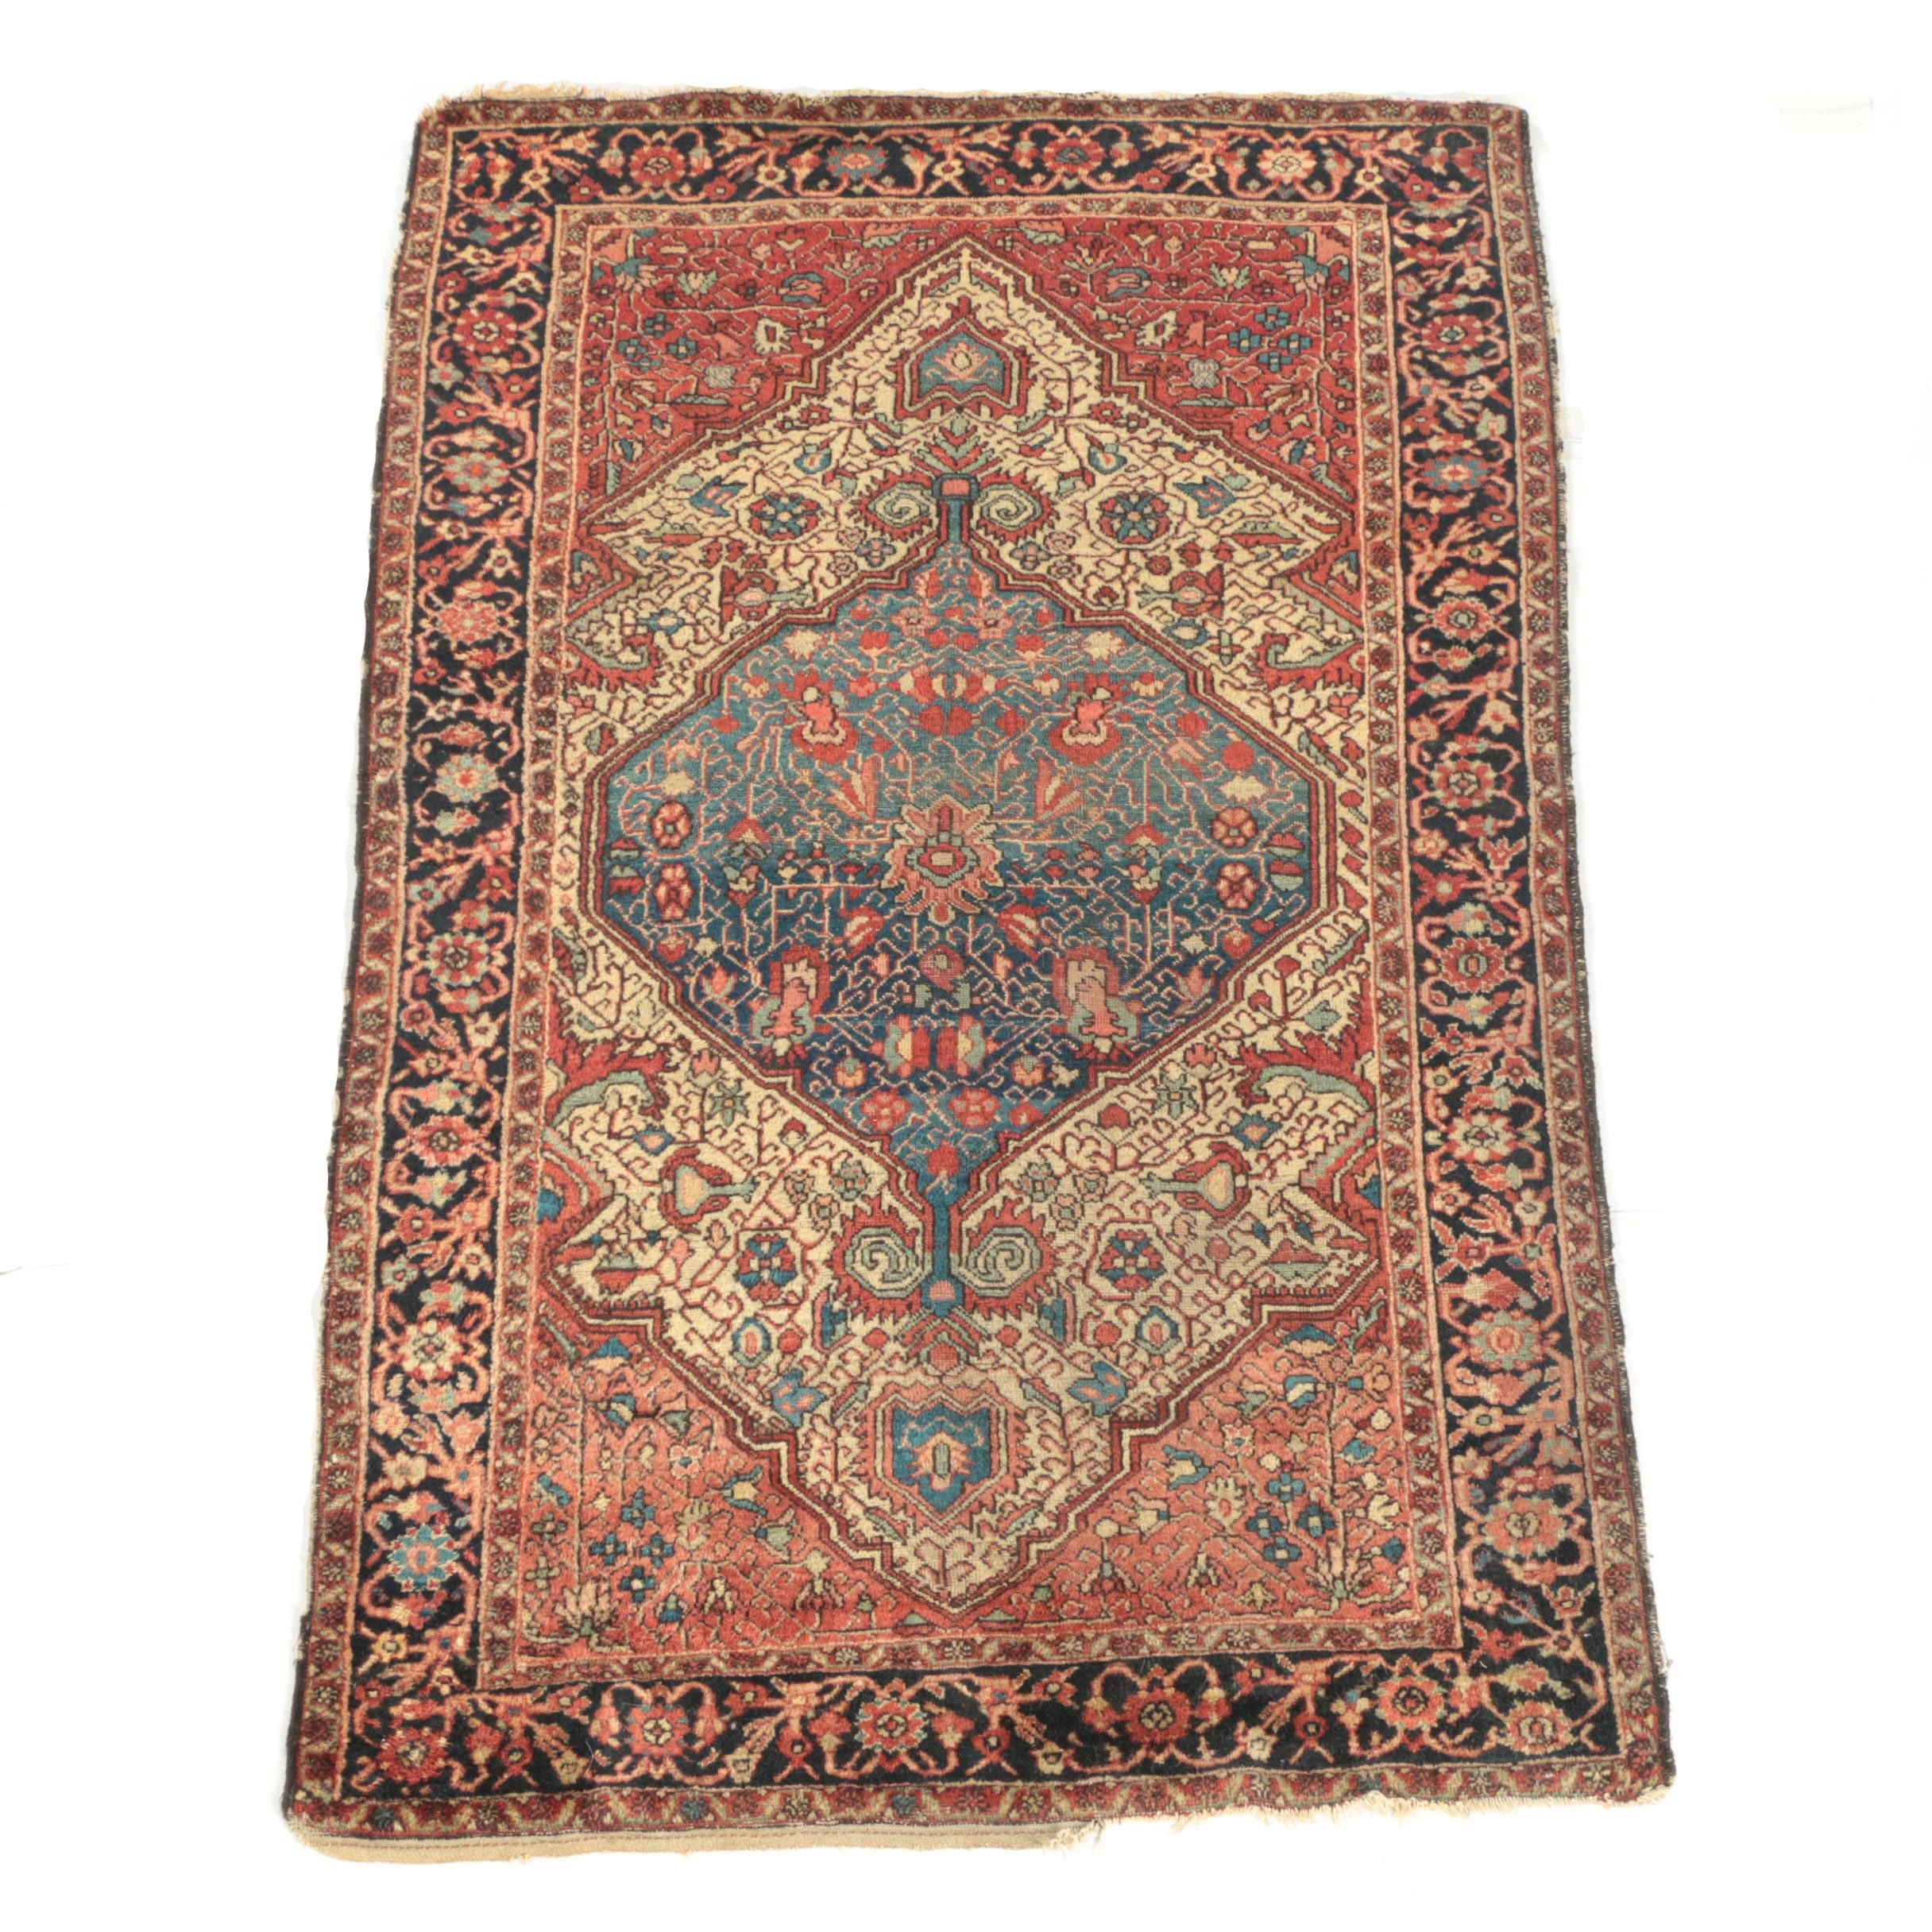 Antique Hand-Knotted Hamadan Touserkan Area Rug